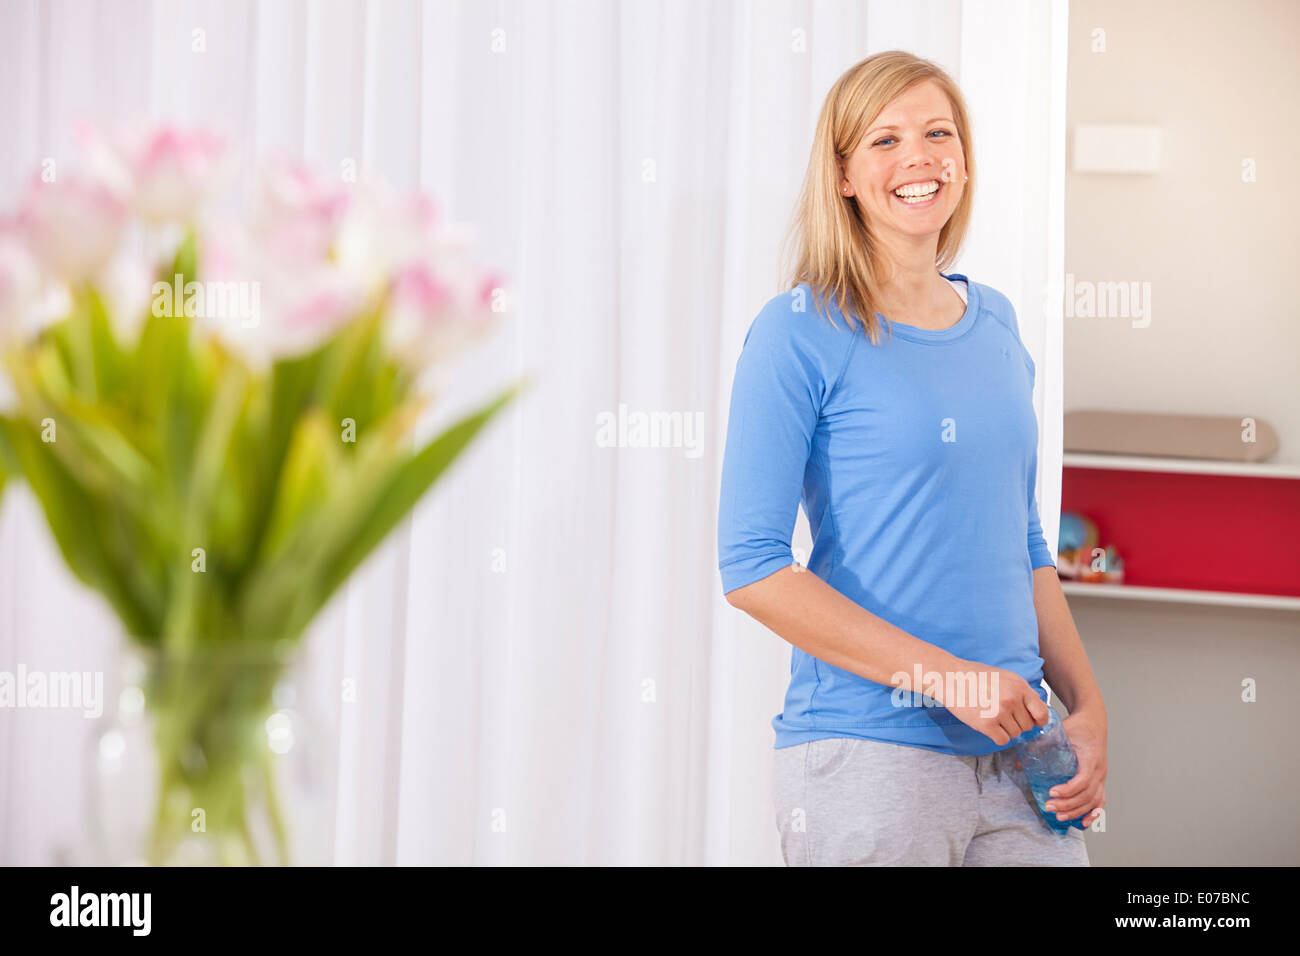 Blond woman in gym takes a break smiling cheerfully - Stock Image